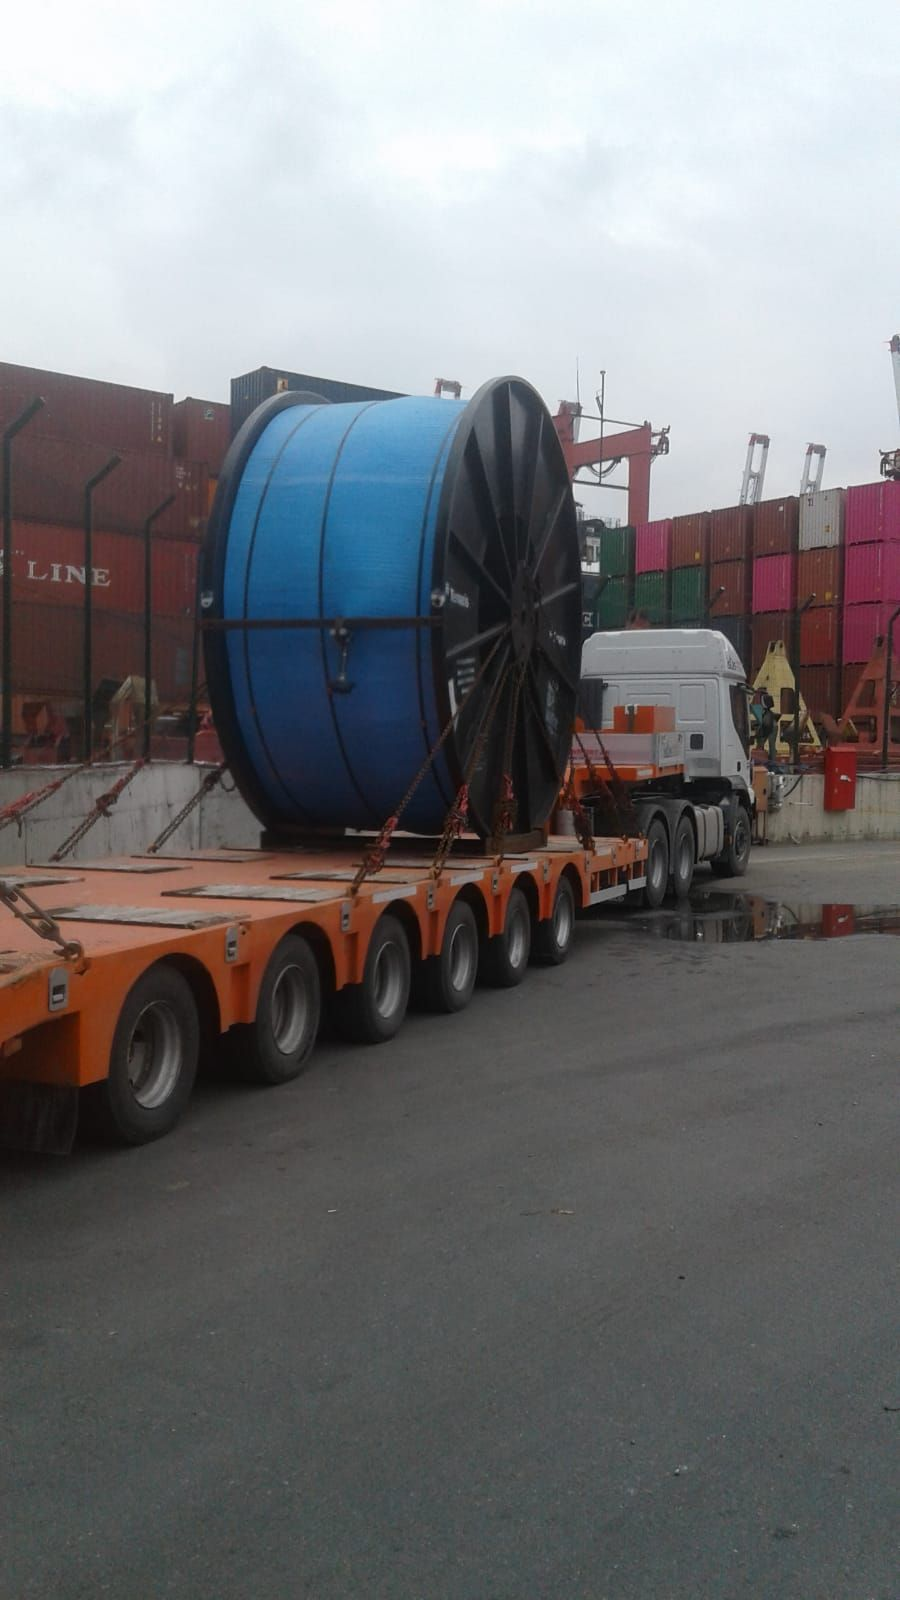 FROM United Kingdom To Hungary Project logistics has been completed smoothly